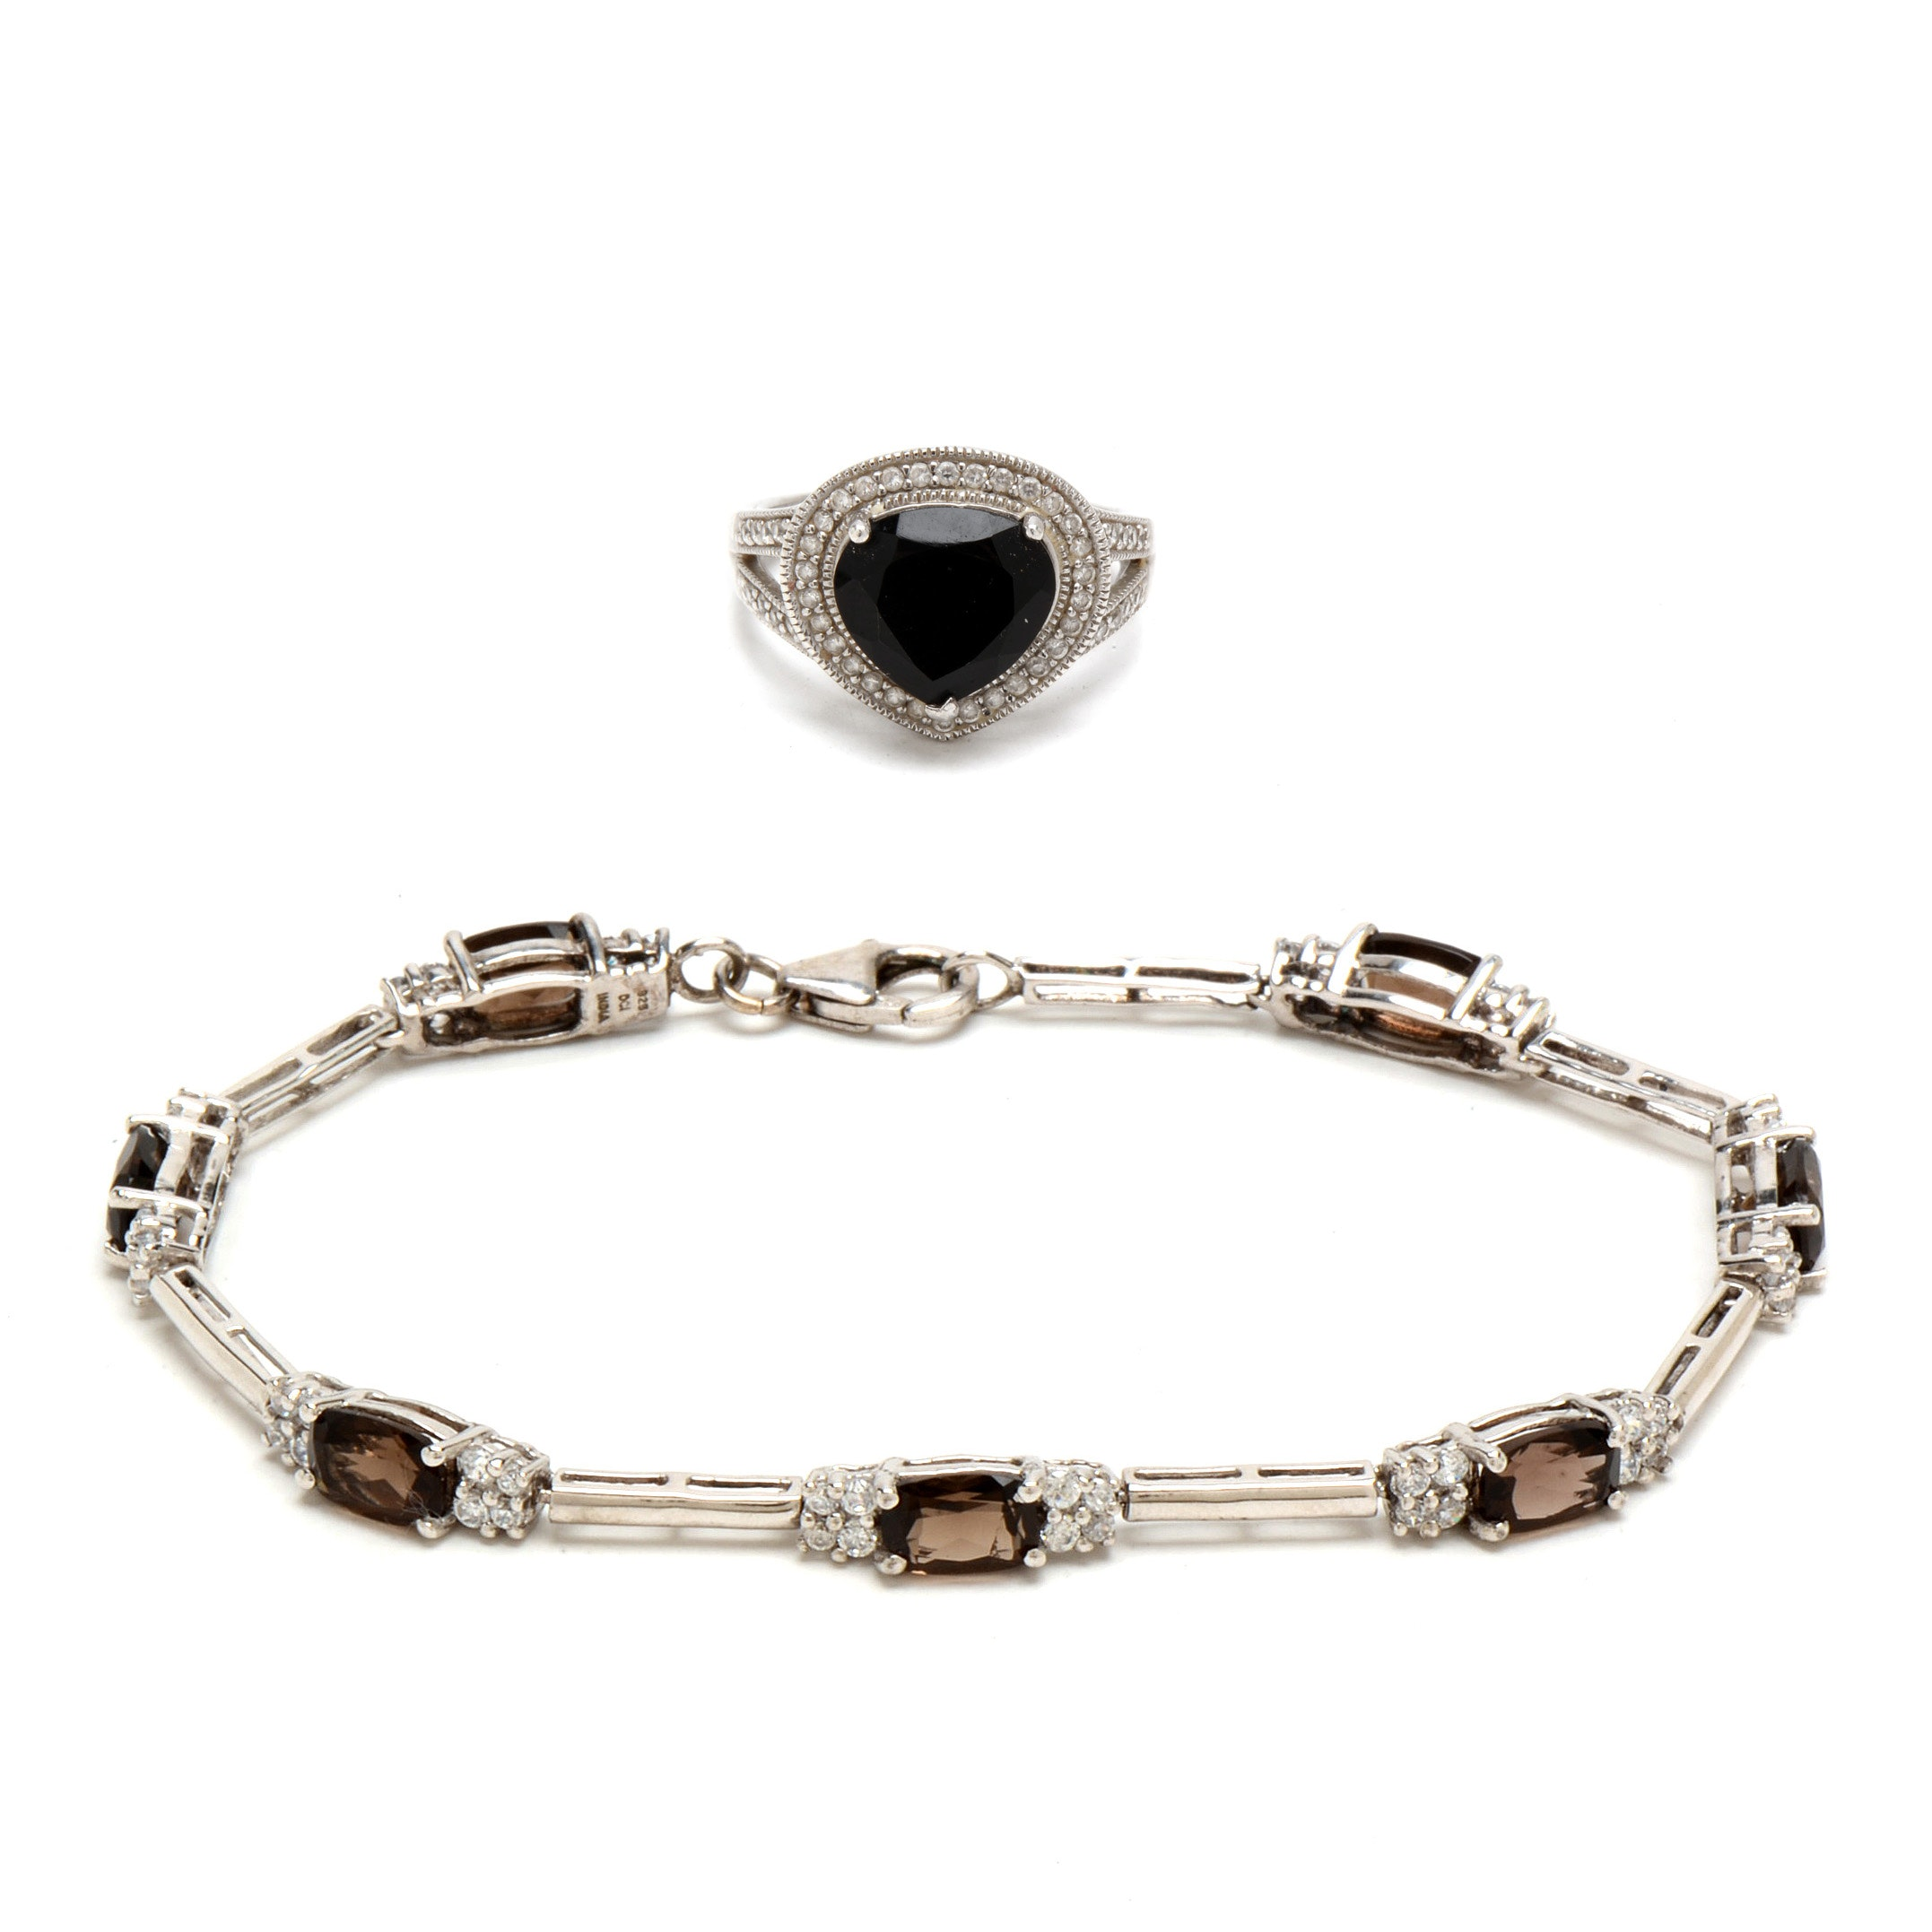 Pairing of Sterling Silver Jewelry with Smoky Quartz and CZs